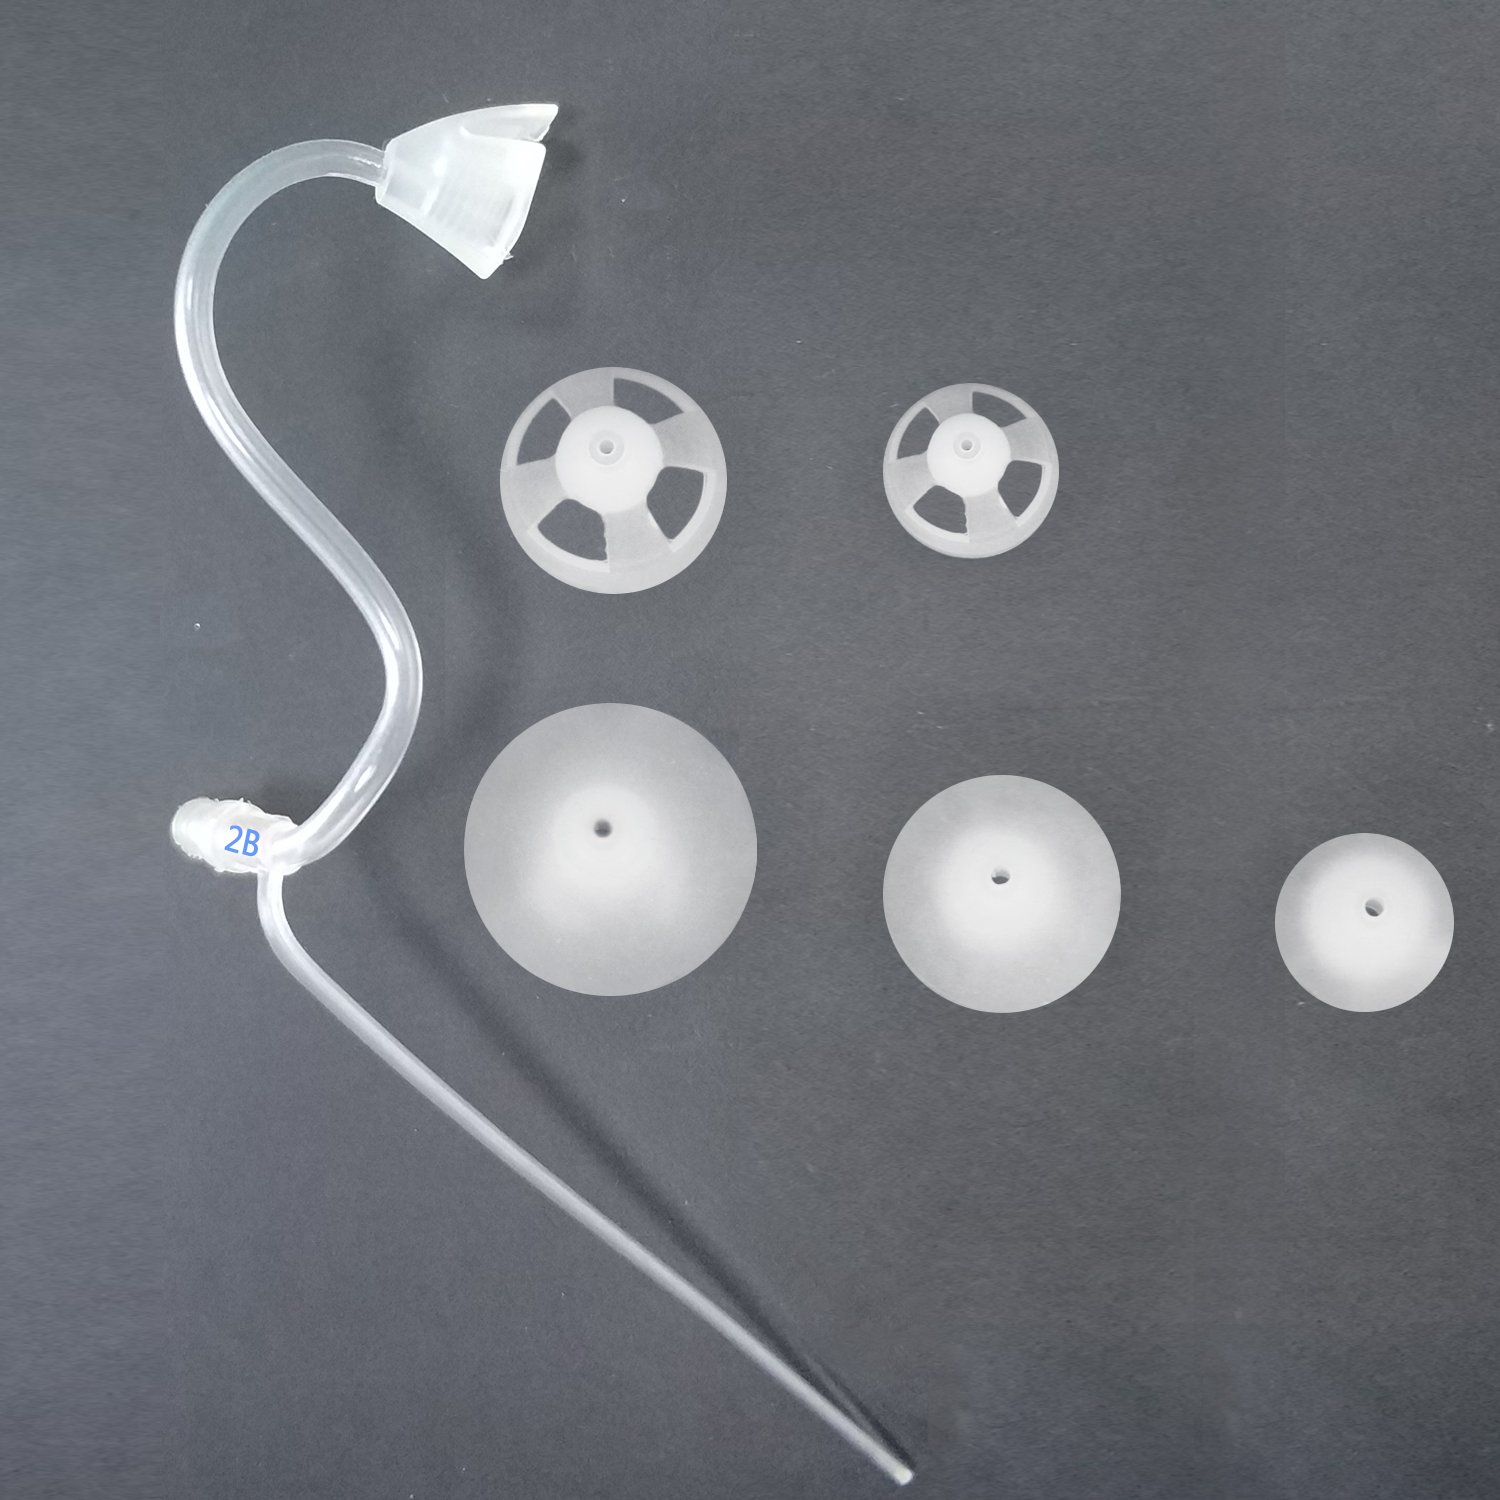 Banglijian Hearing Amplifier Replacement Slim Sound Tubes and Domes for Ziv-201A and Ziv-201 (2 Tubes-Size 2B and 10 Domes, Left)